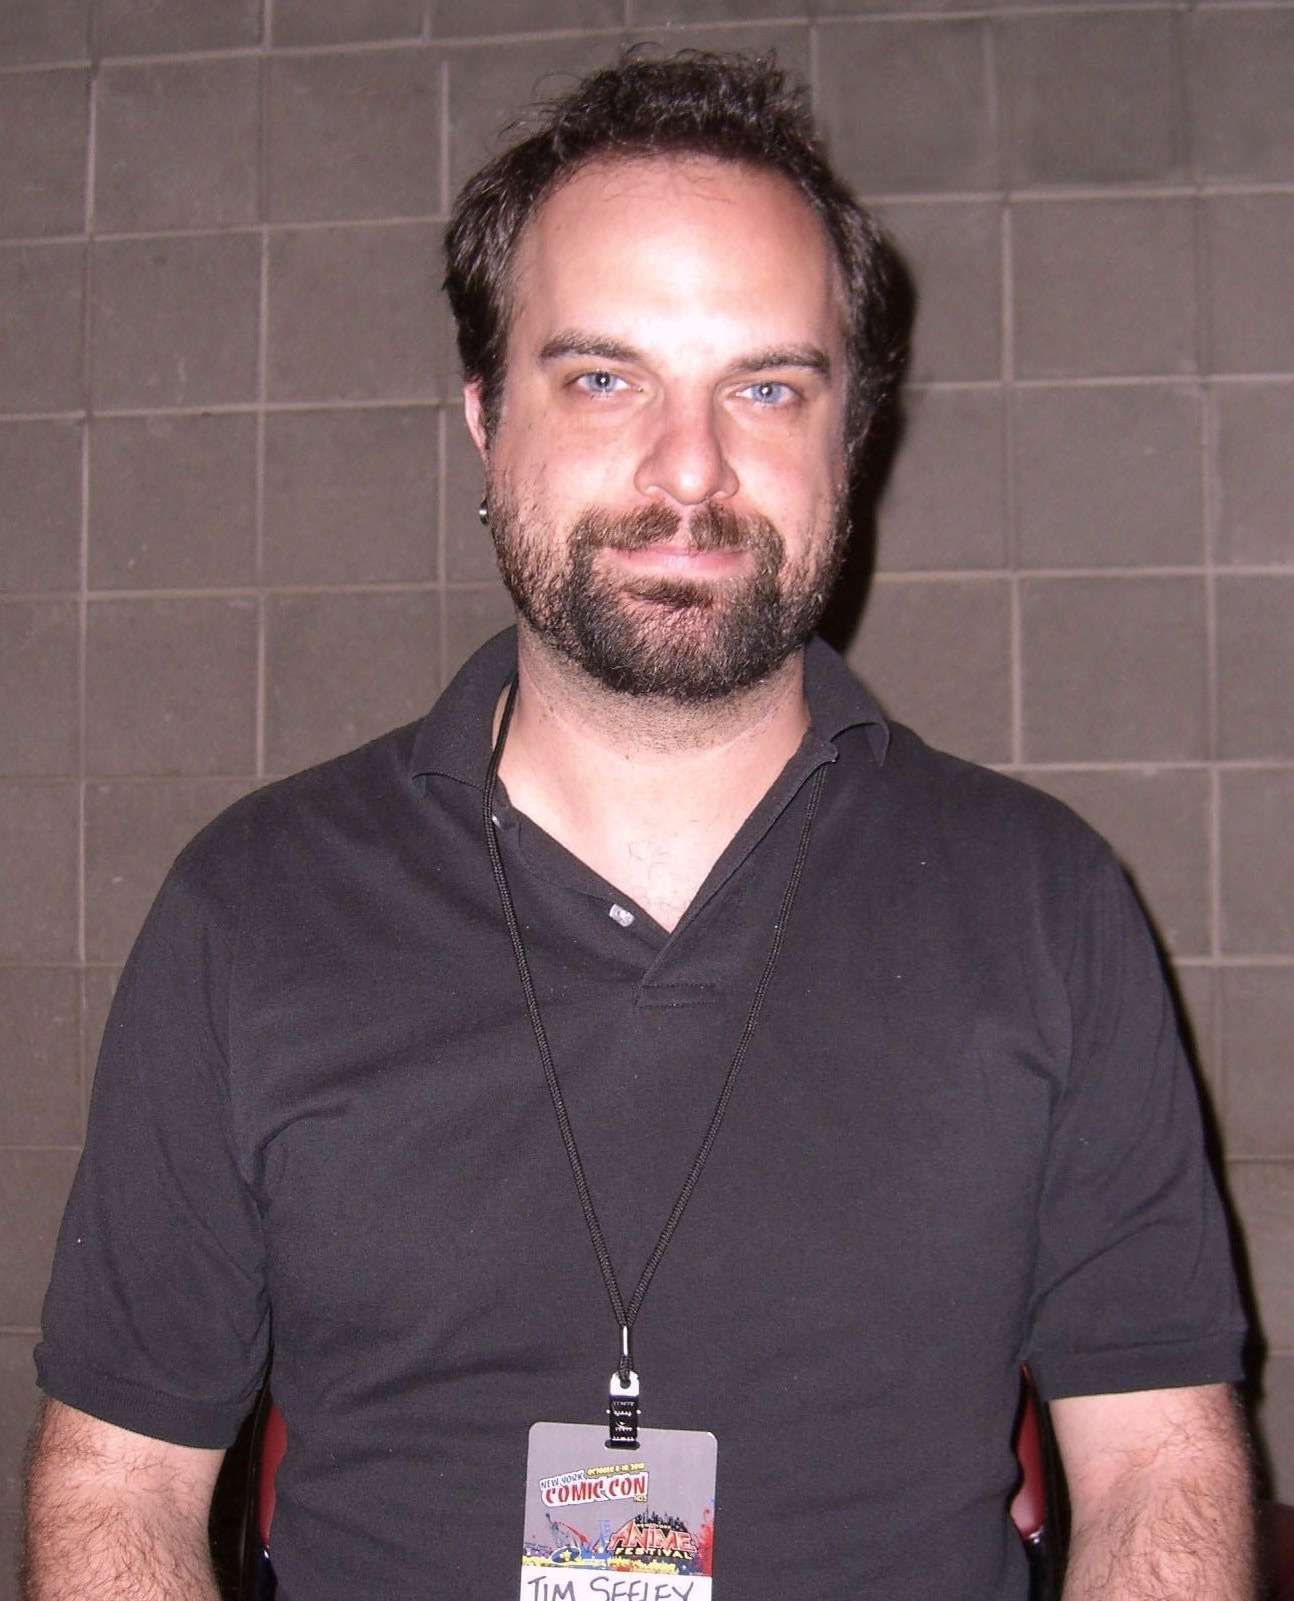 Seeley at the [[New York Comic Con]] in Manhattan, October 9, 2010.